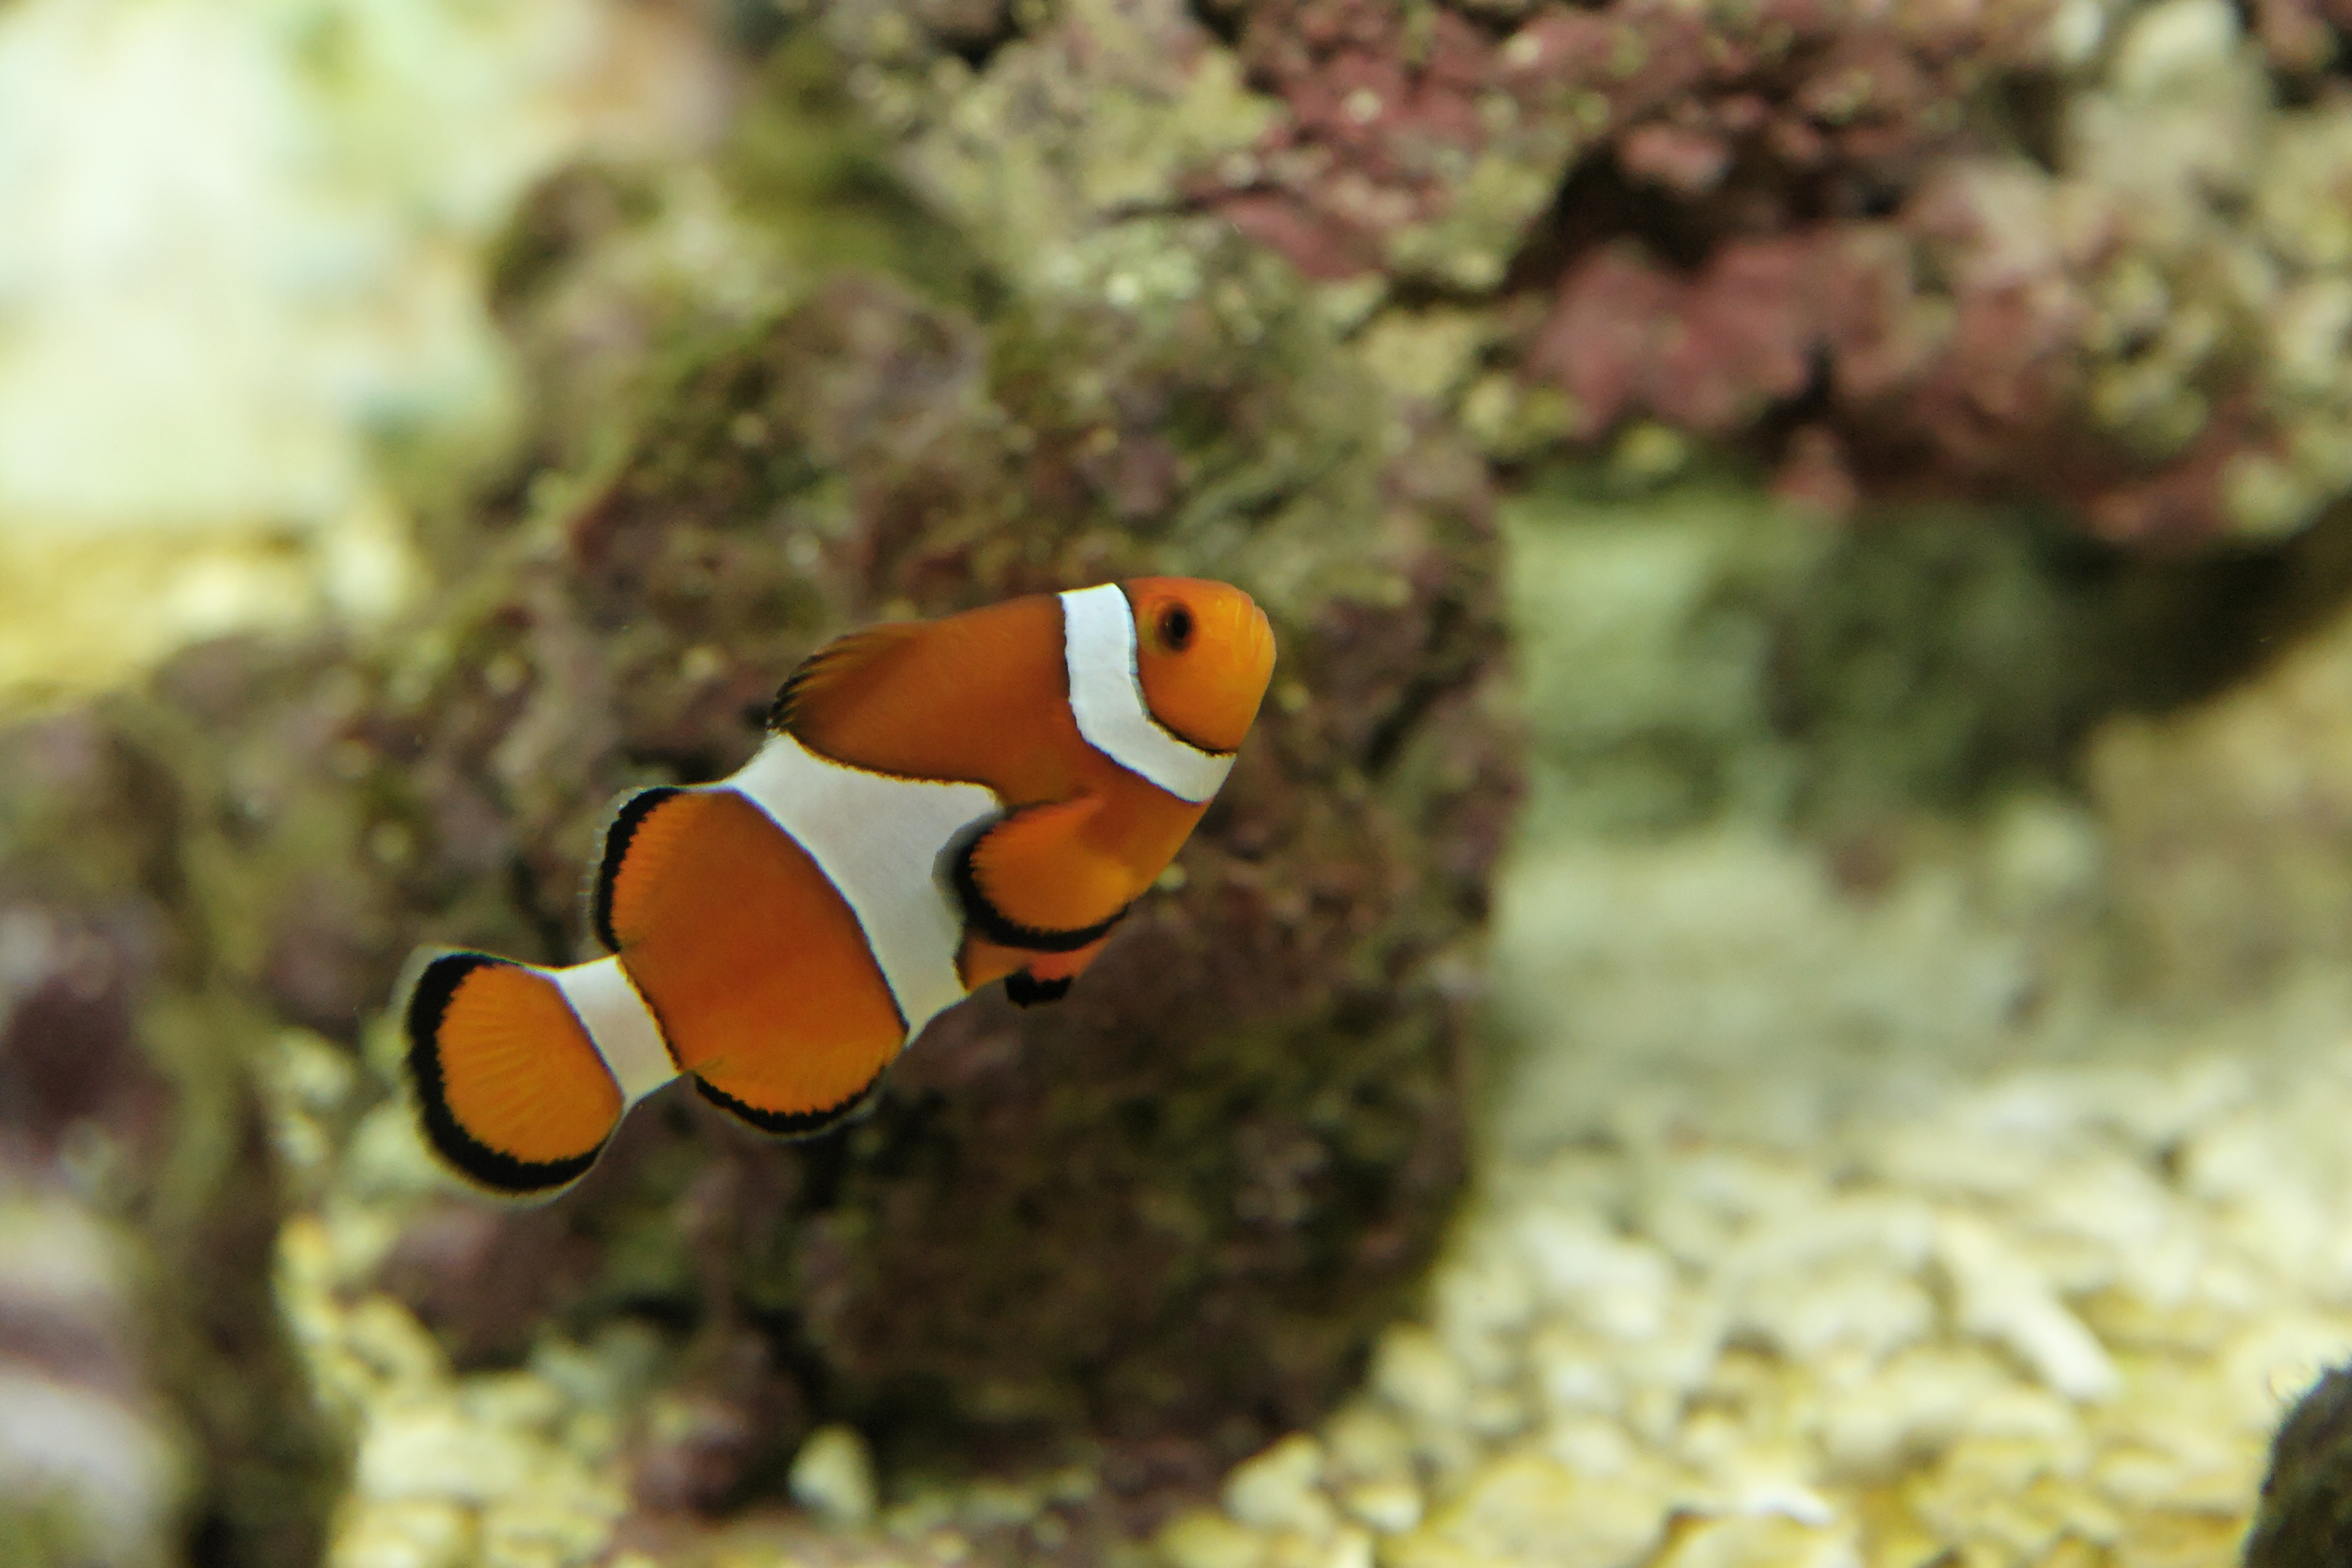 Amphiprion ocellaris (false percula clownfish), Aquarium.jpg - Amphiprion ocellaris (false percula clownfish)